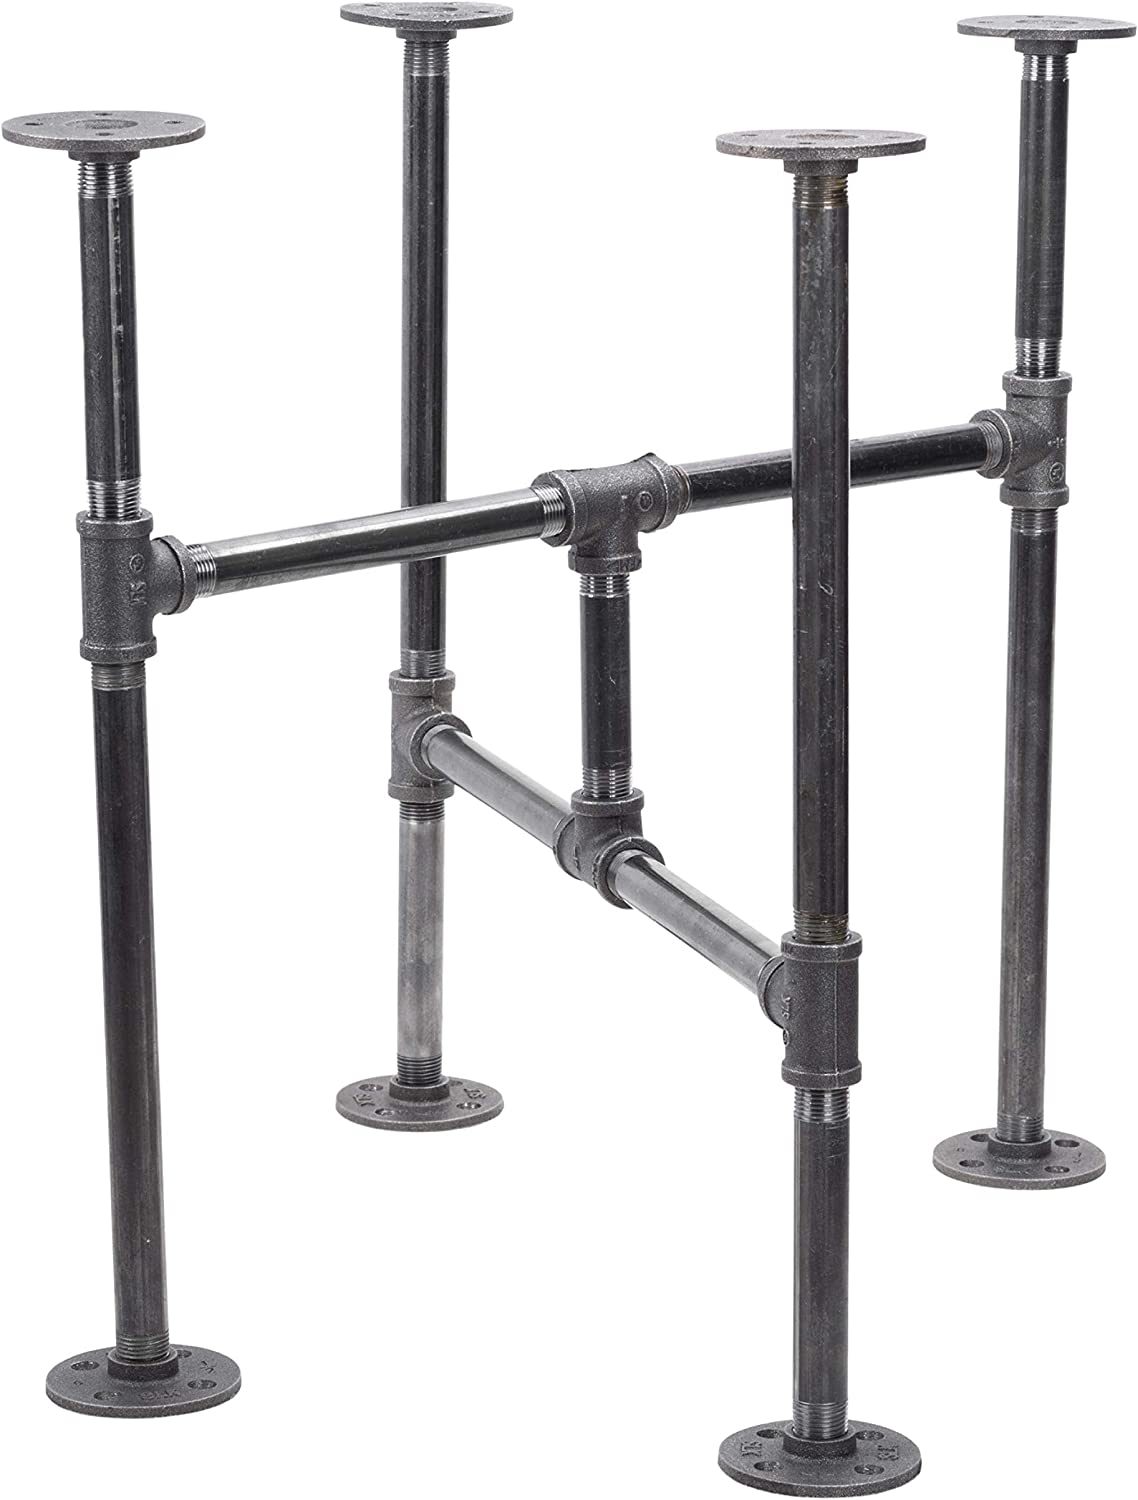 Amazon Com Industrial Pipe Decor Table Leg Set Rustic End Table Side Table Base Kit Dark Grey Black Steel Metal Pipes Vintage Furniture Decorations Diy Coffee Table Legs Mid Century Modern Turnpike Style Kitchen